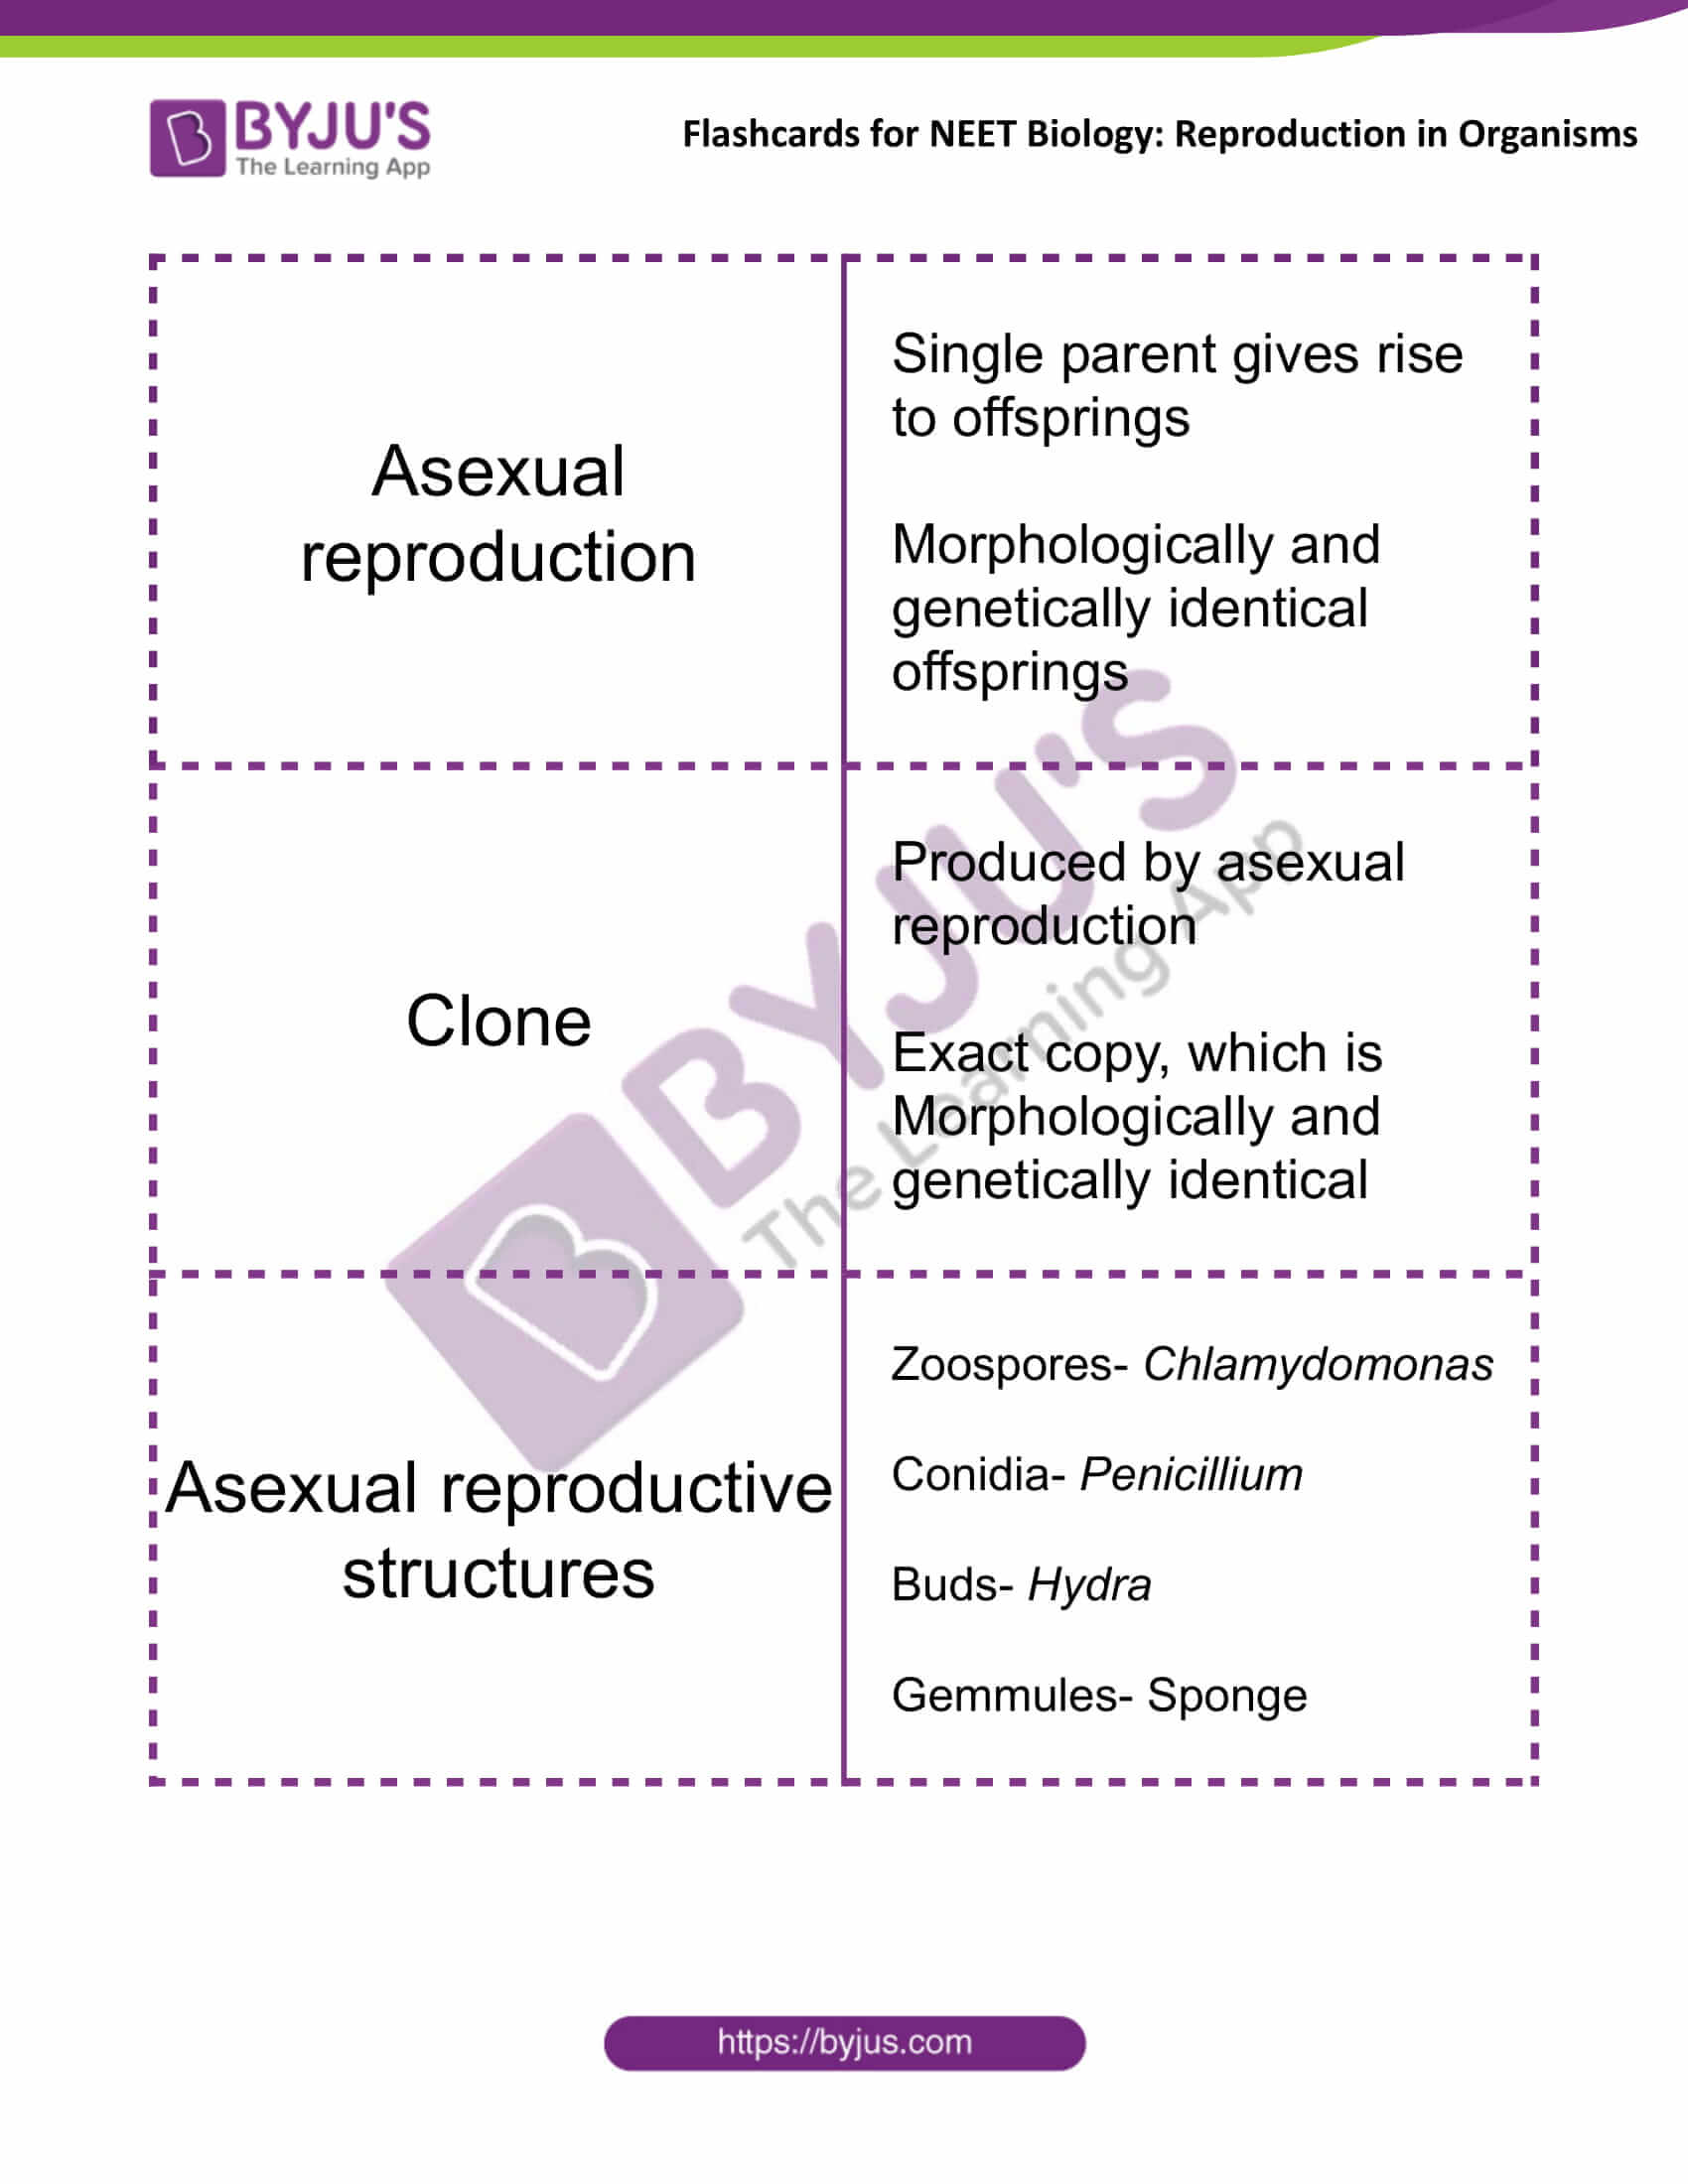 Flashcards for NEET Biology for Reproduction in Organisms 1